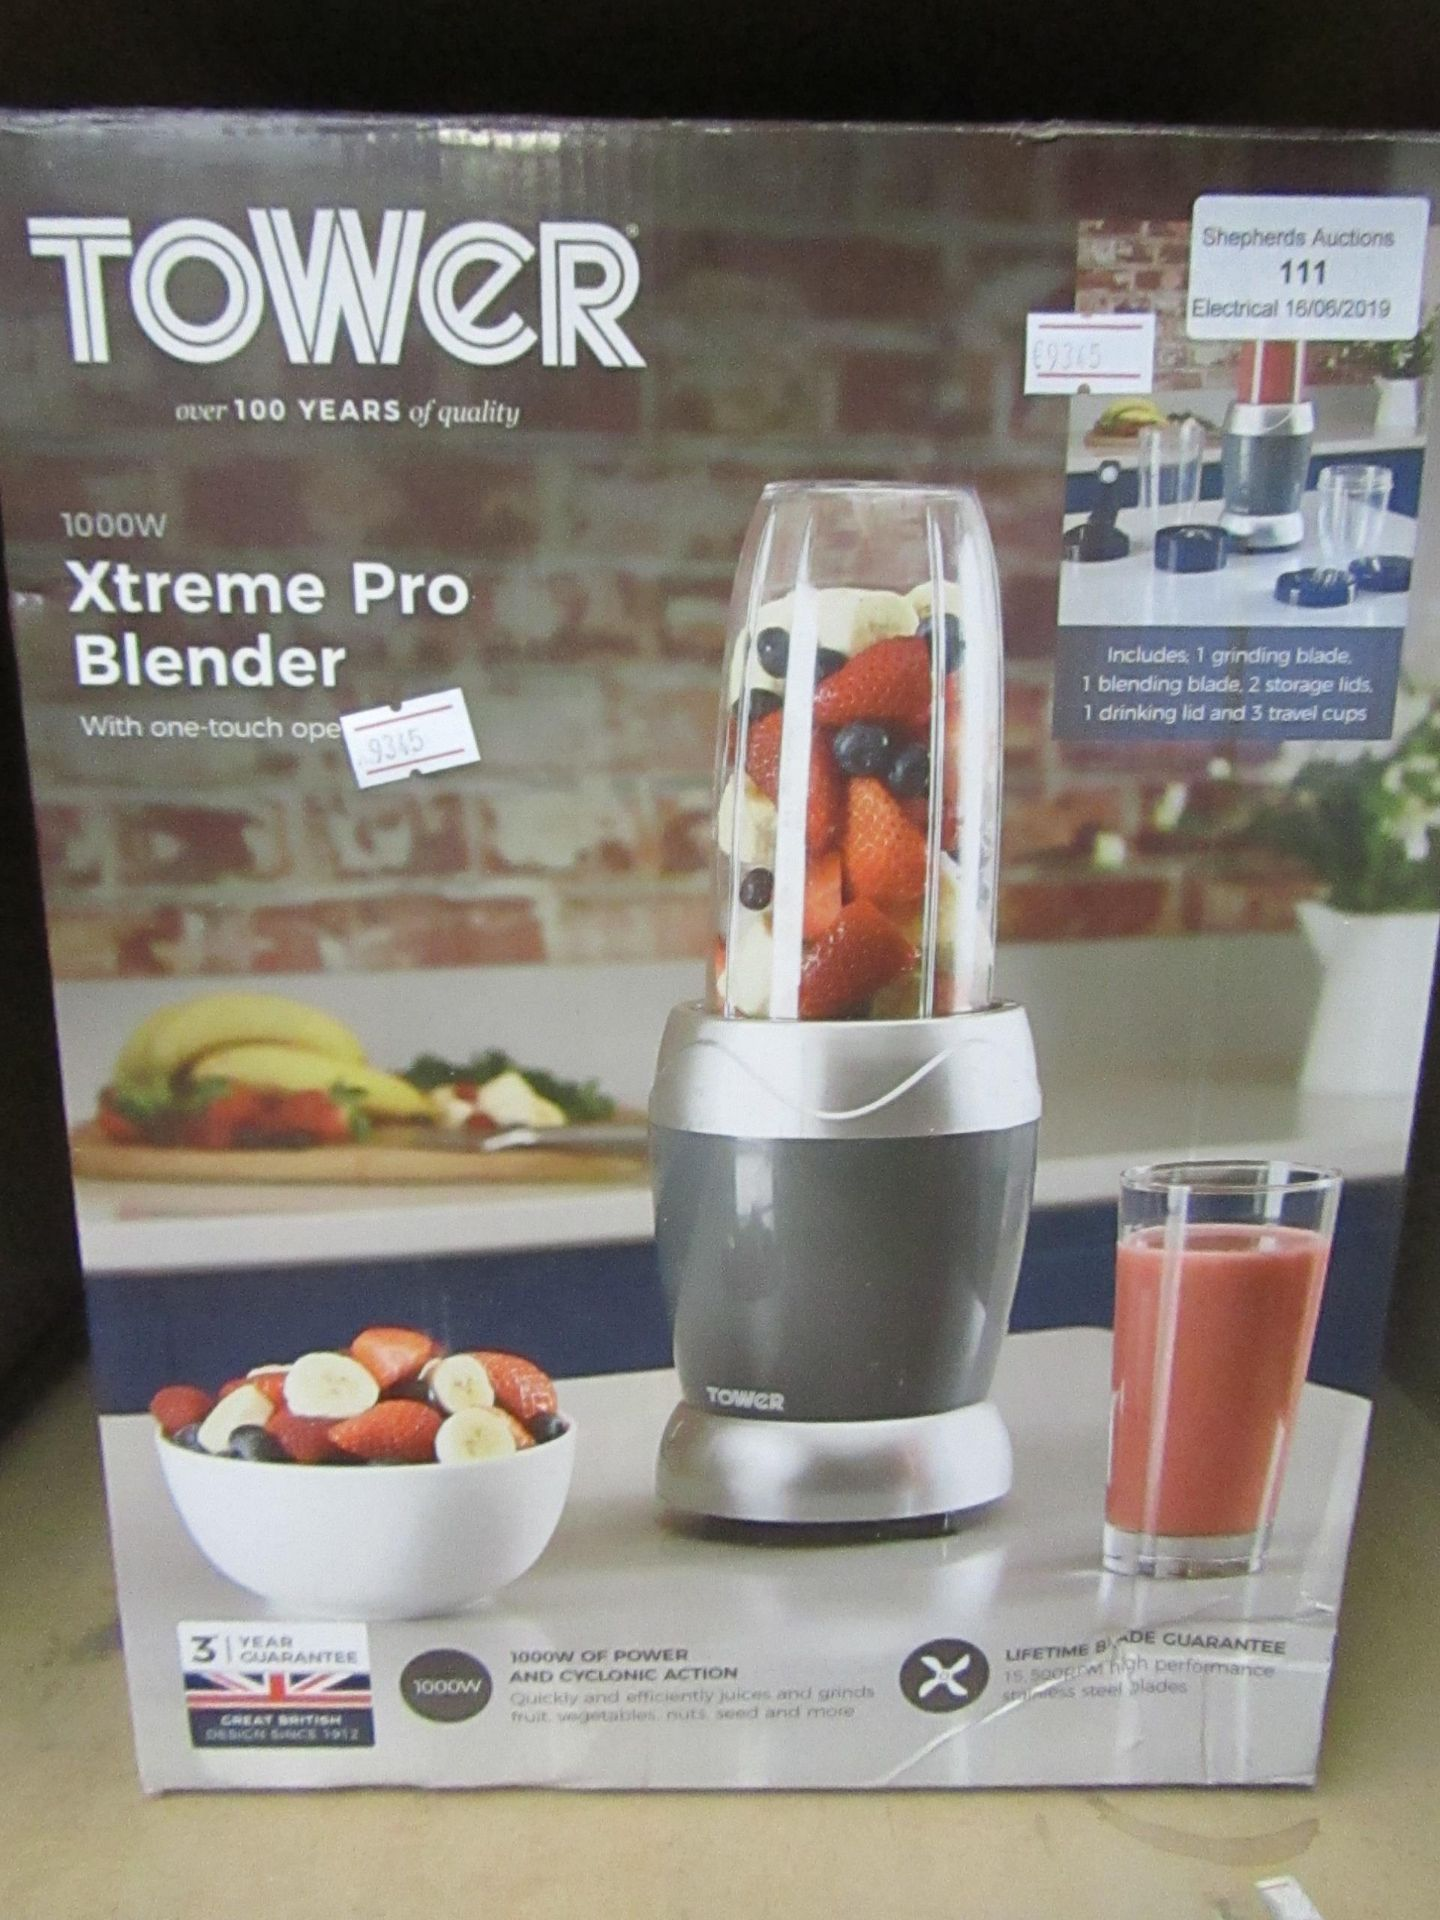 Lot 111 - Tower Xtreme Pro blender, tested working and boxed.